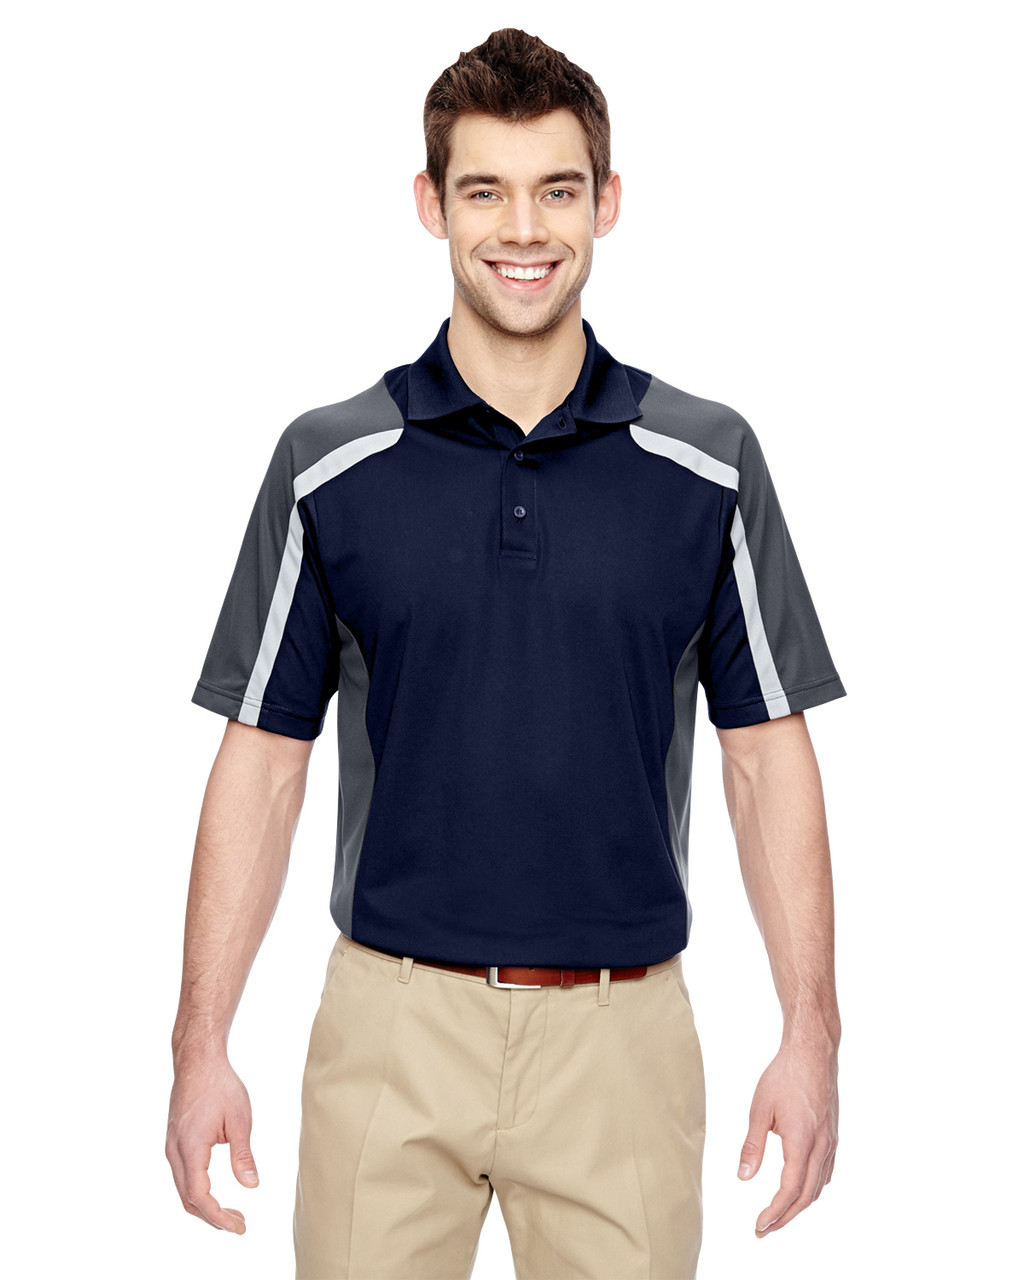 Carbon - 85119 Extreme Eperformance™ Snag Protection Polo Shirt